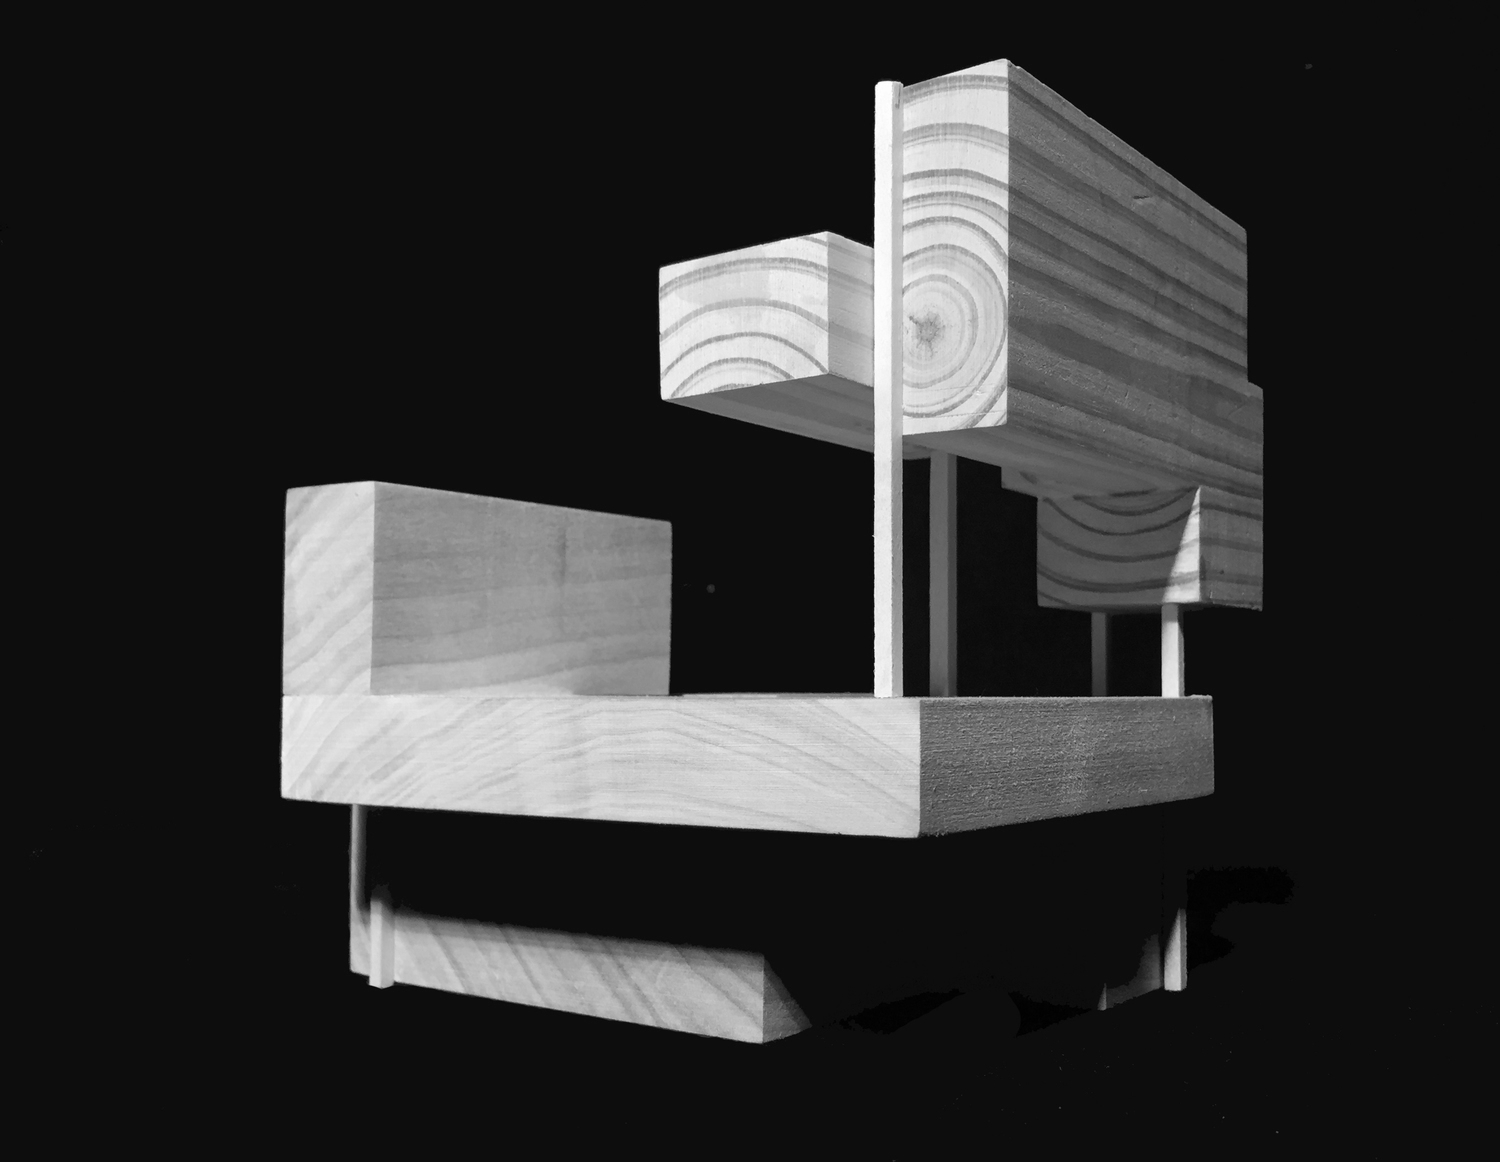 Relating tectonic pieces to stereotomic mass. Poplar wood. 01/02